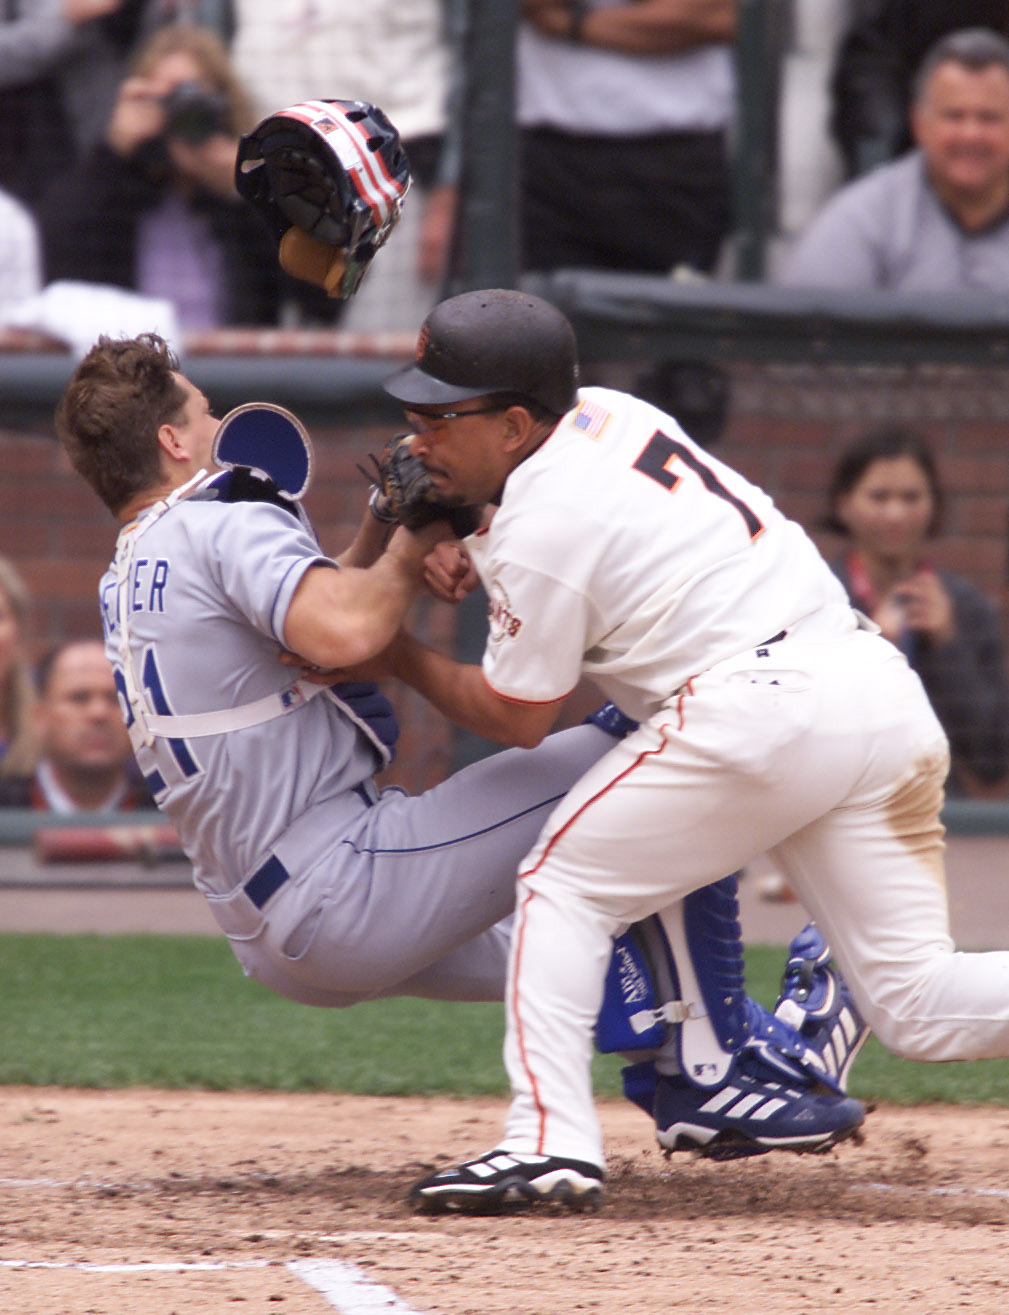 7 Oct 2001:  Marvin Benard of the San Francisco Giants collides with catcher Chad Kreuter of the Los Angeles Dodgers on a single hit by Barry Bonds at Pac Bell Park in San Francisco, California. Bernard was out on the play. DIGITAL IMAGE Mandatory Credit: